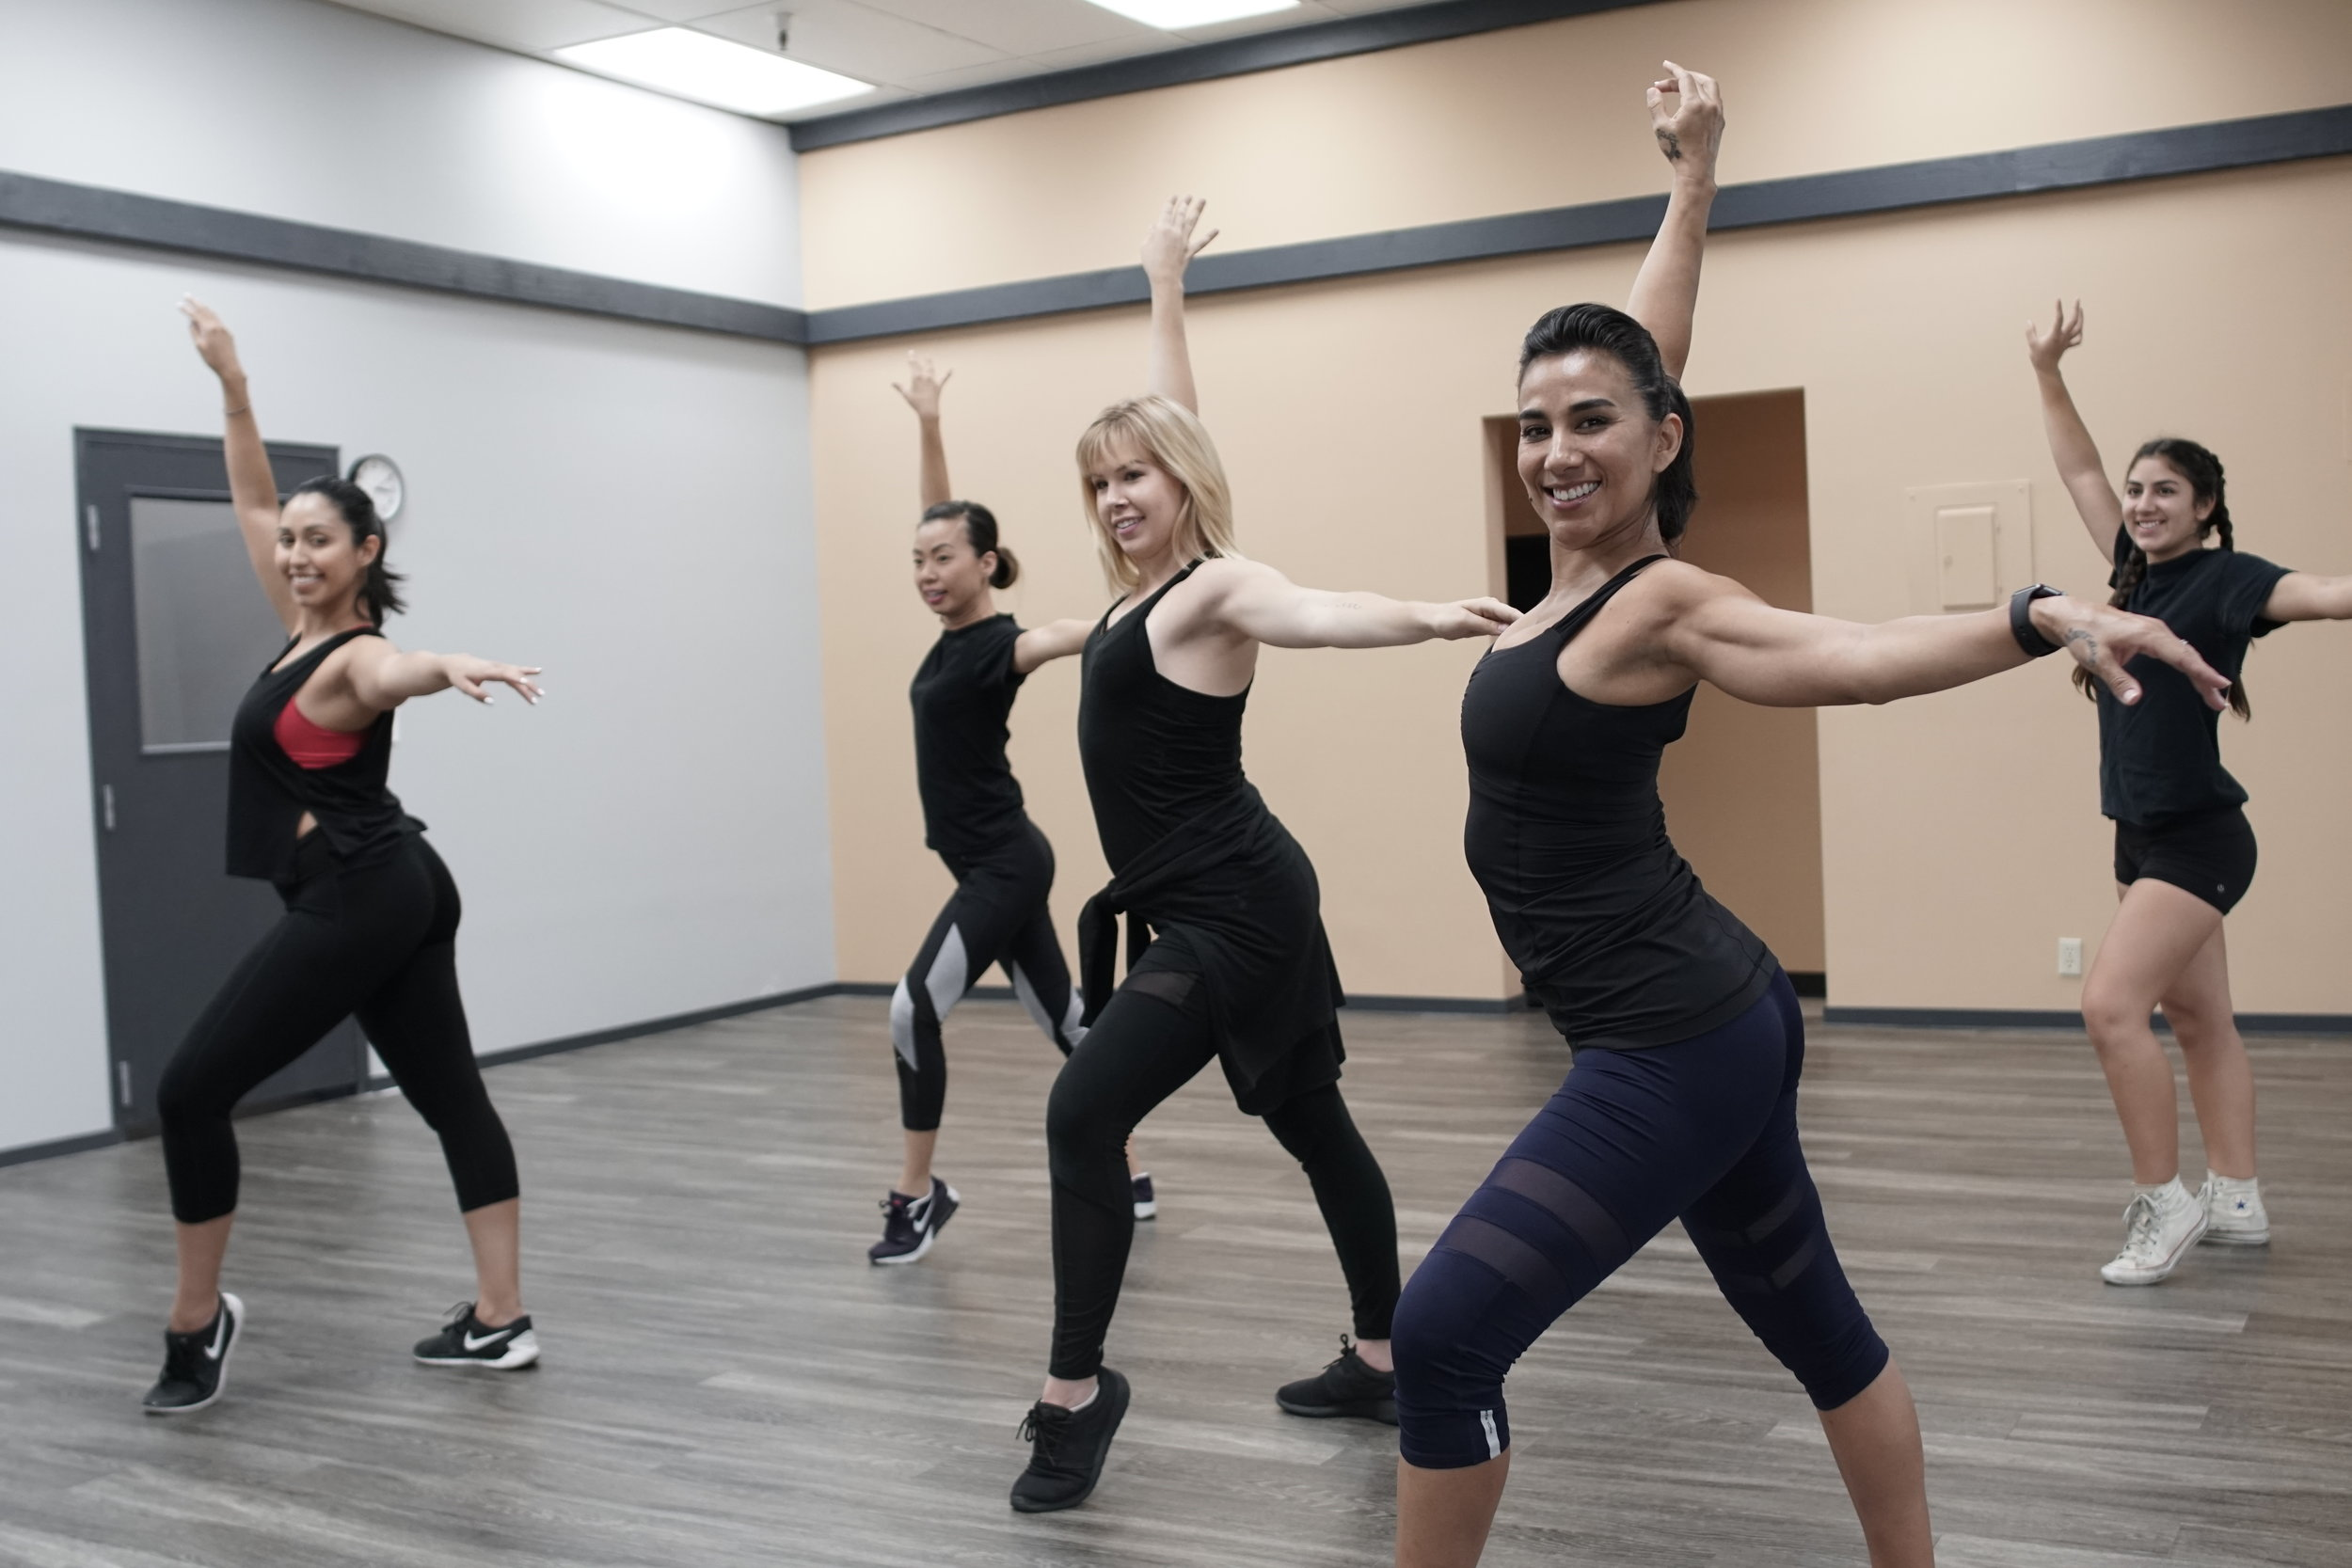 20+ adult classes  zumba, yoga, barre  hip hop, pilates, and more   view tuition and schedule